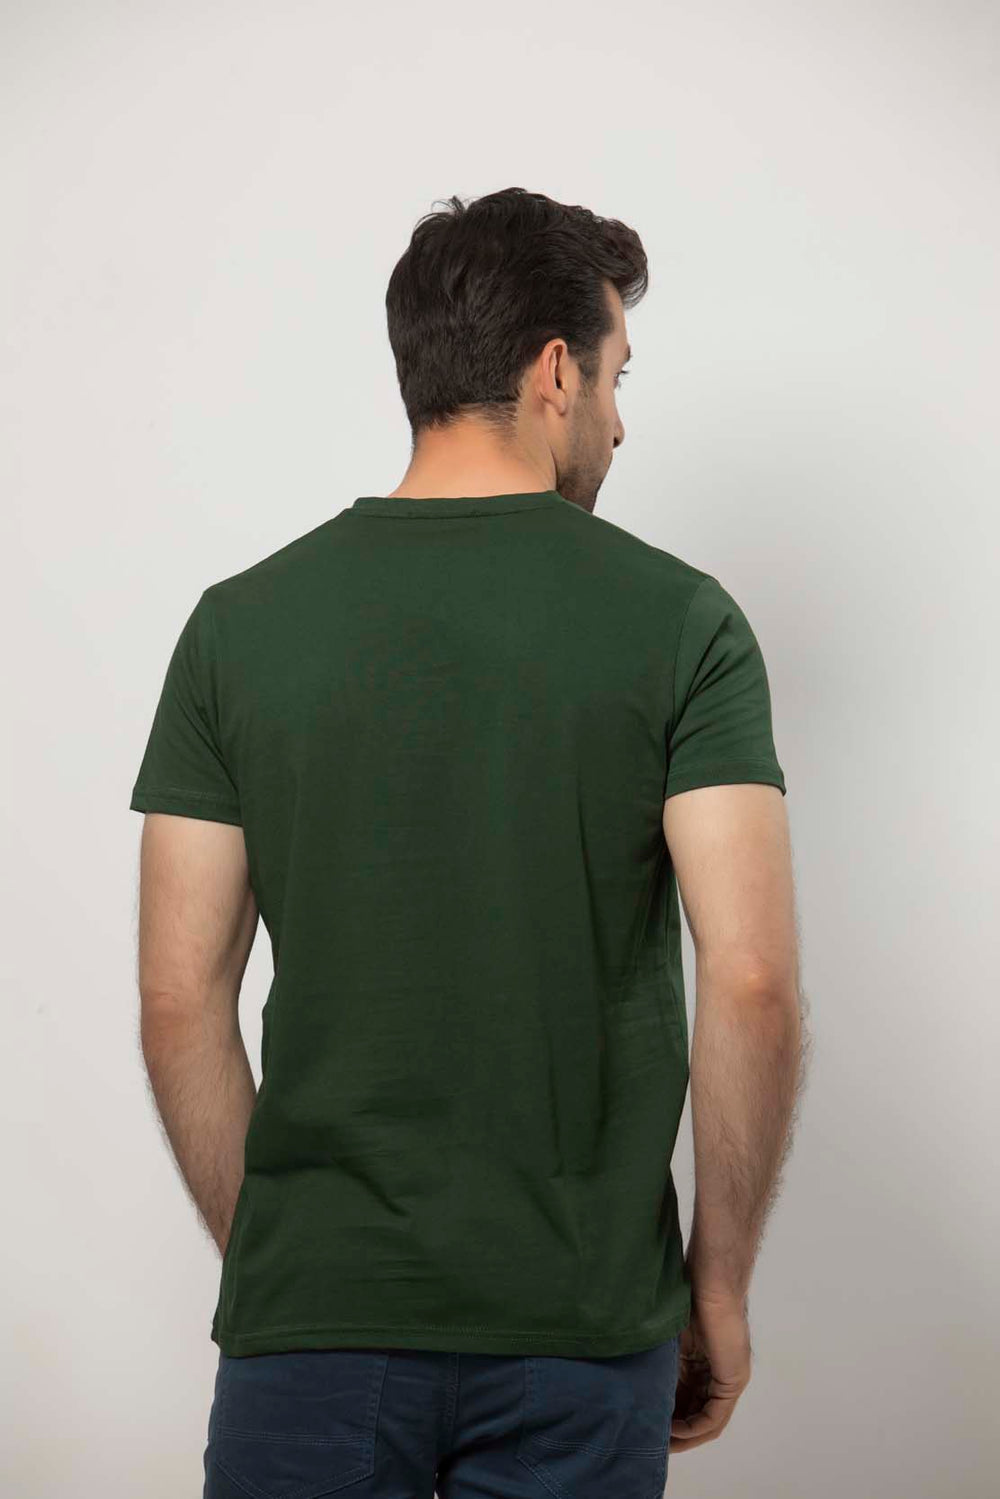 Green T-SHIRT HMKTS20047